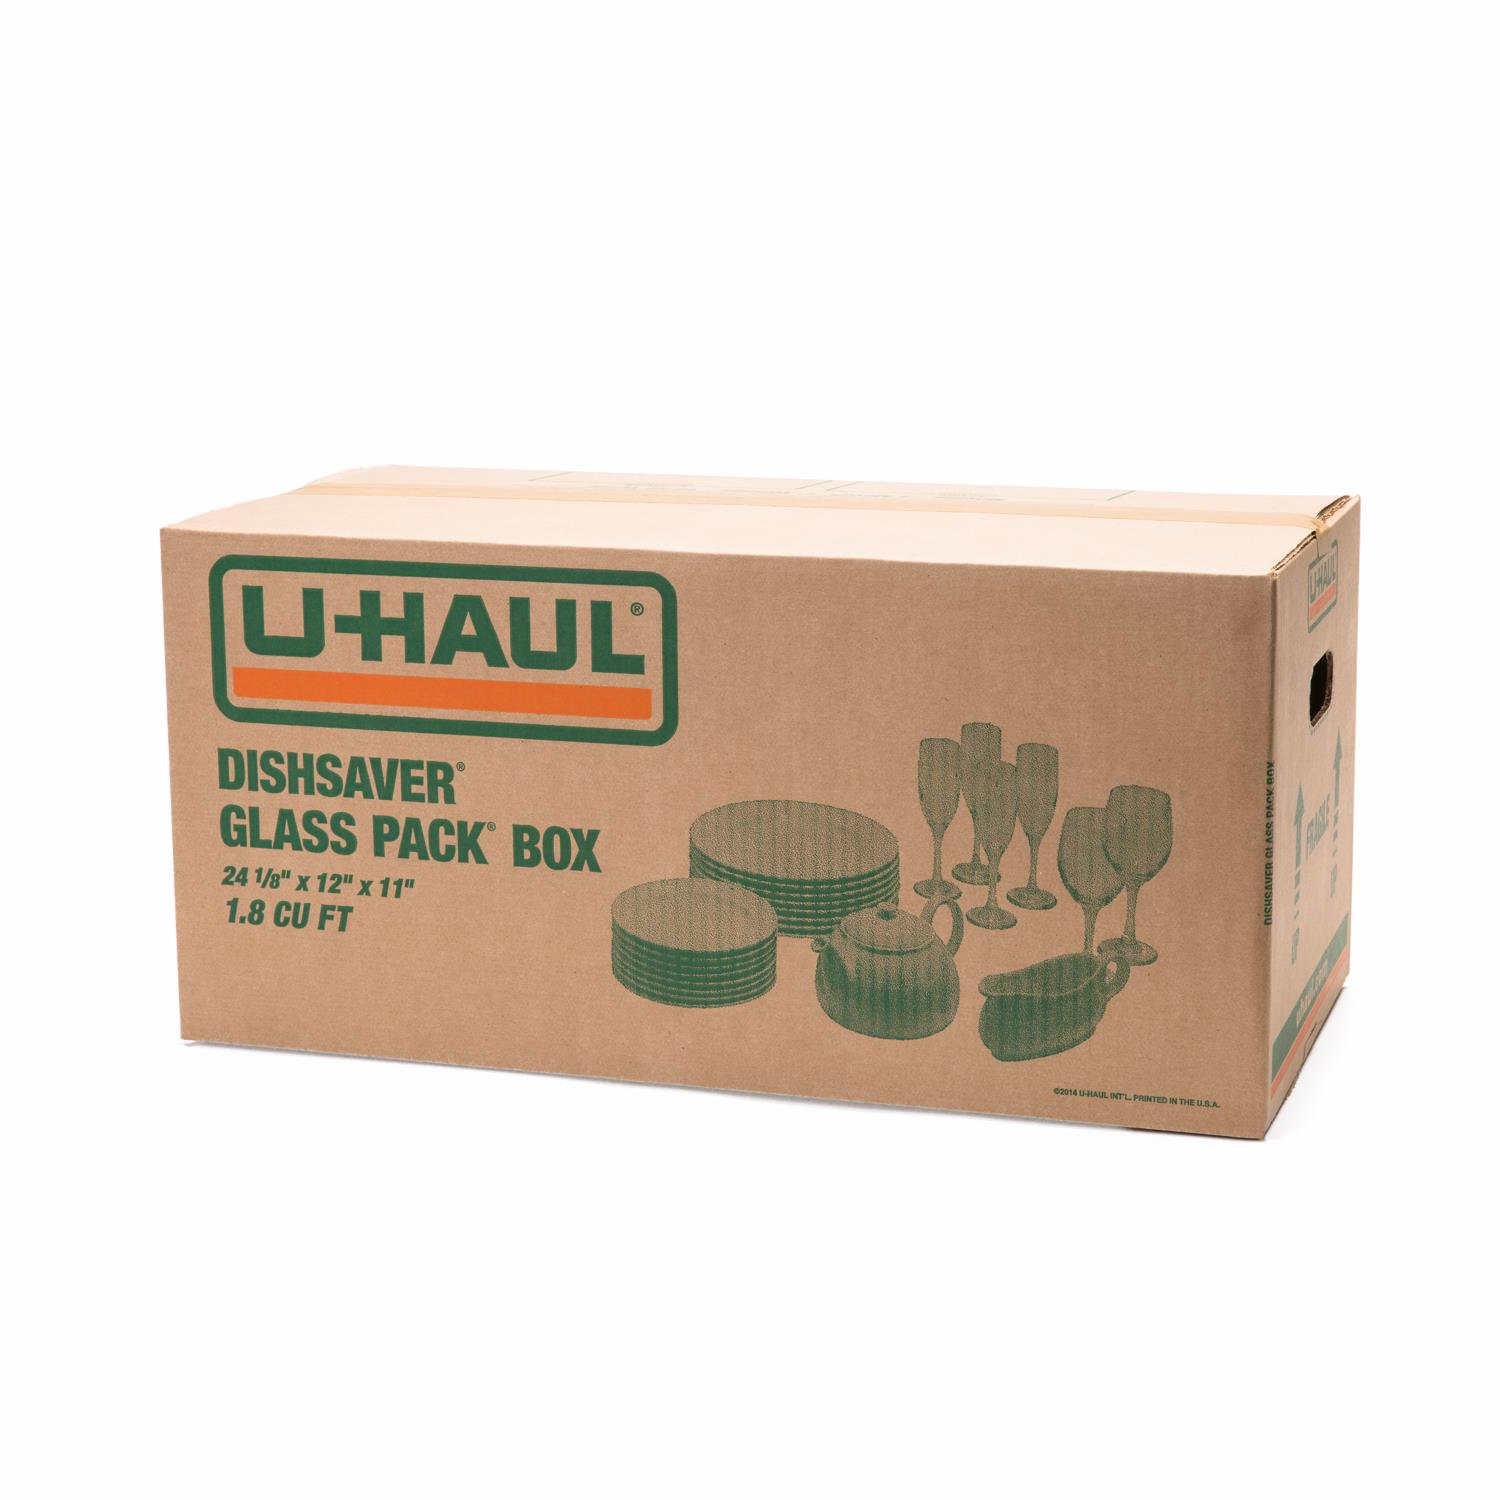 Wardrobe Boxes Uhaul: U-Haul: Dishsaver Glass Pack Box